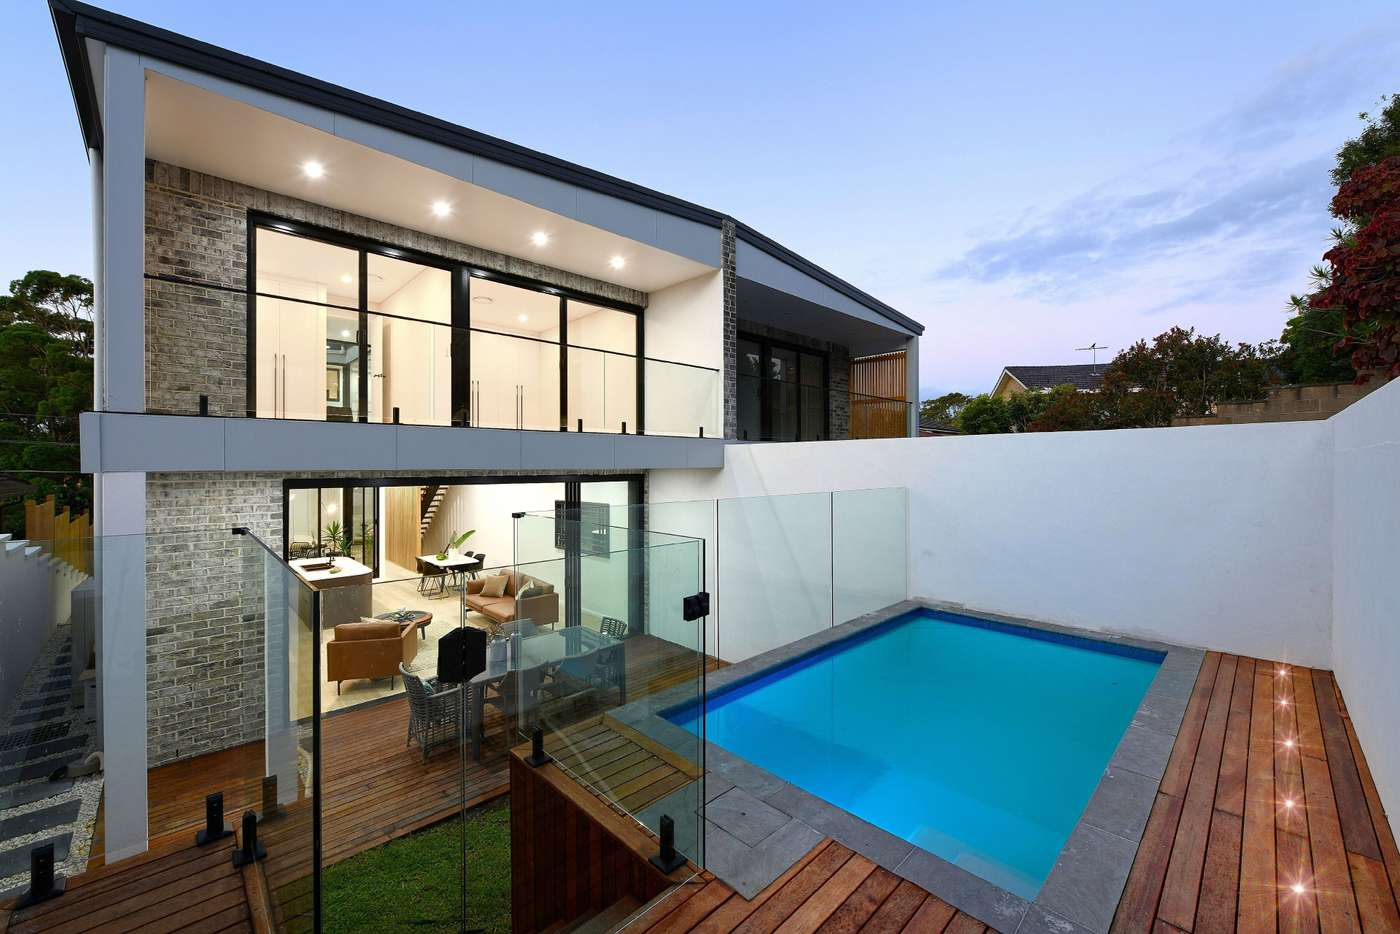 Main view of Homely house listing, 127 Moverly Road, South Coogee NSW 2034